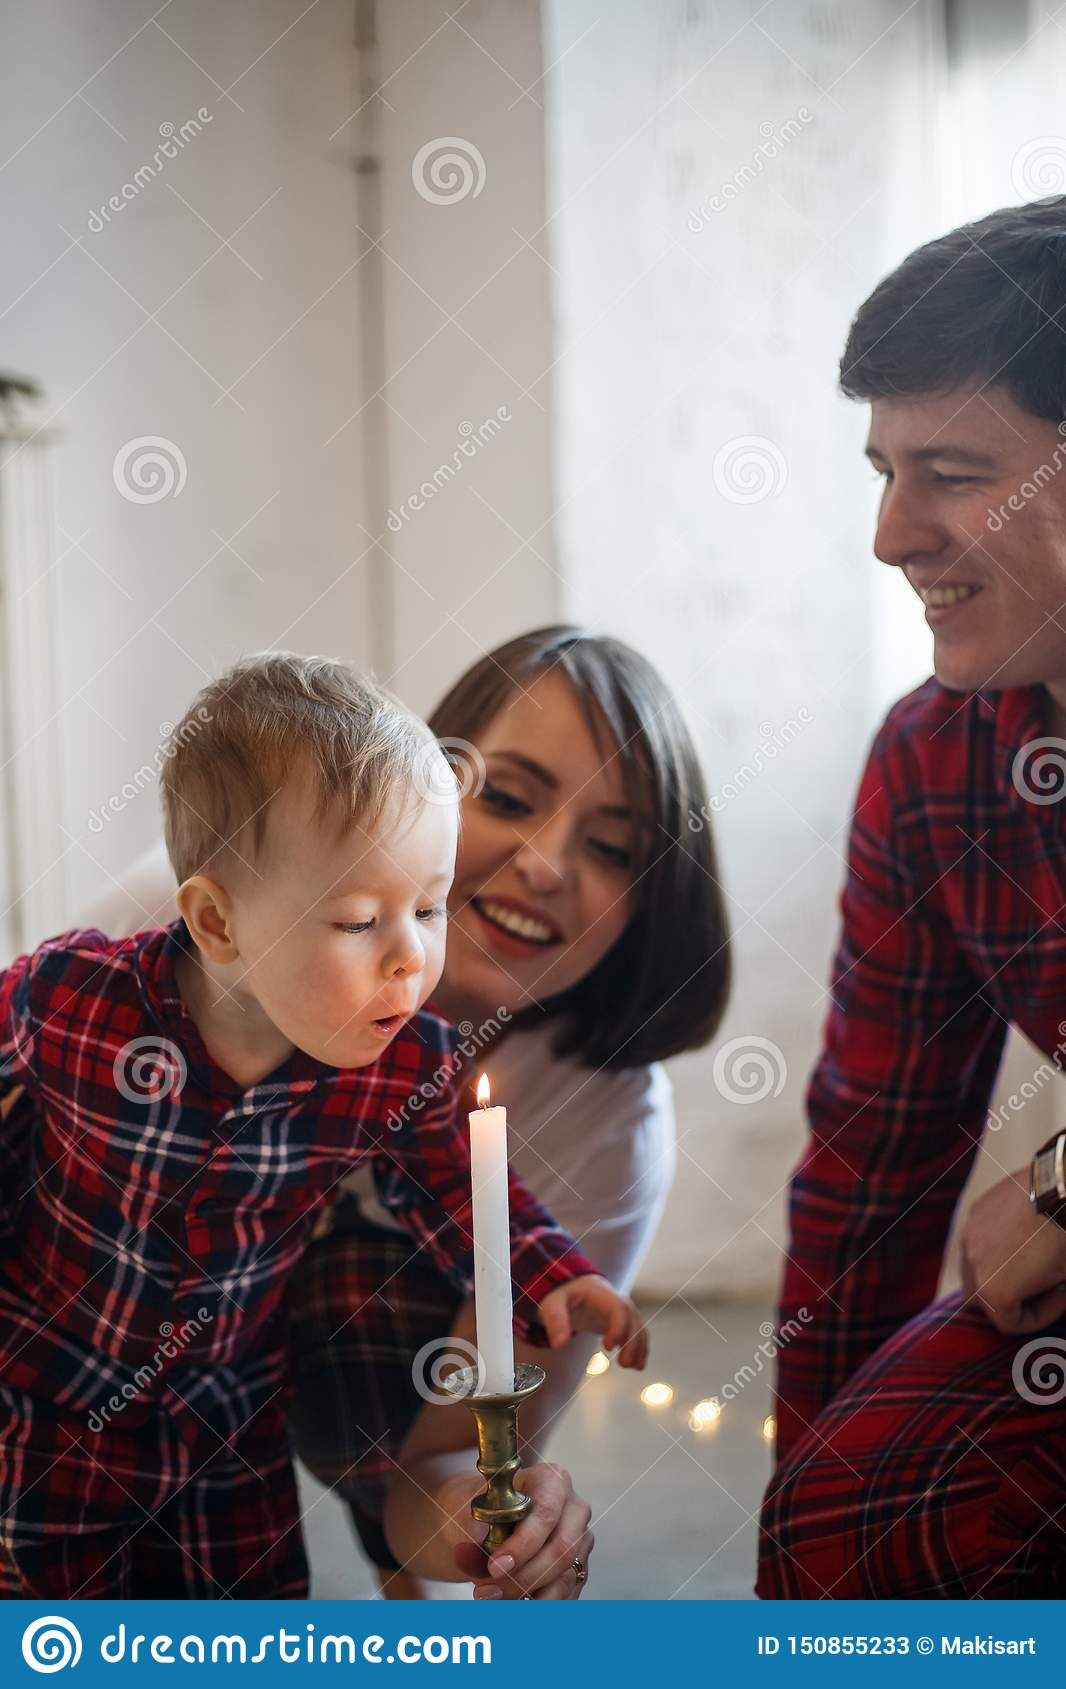 Vertical ppicture of family. Child is blowing to candle. Parents are looking at him and smiling